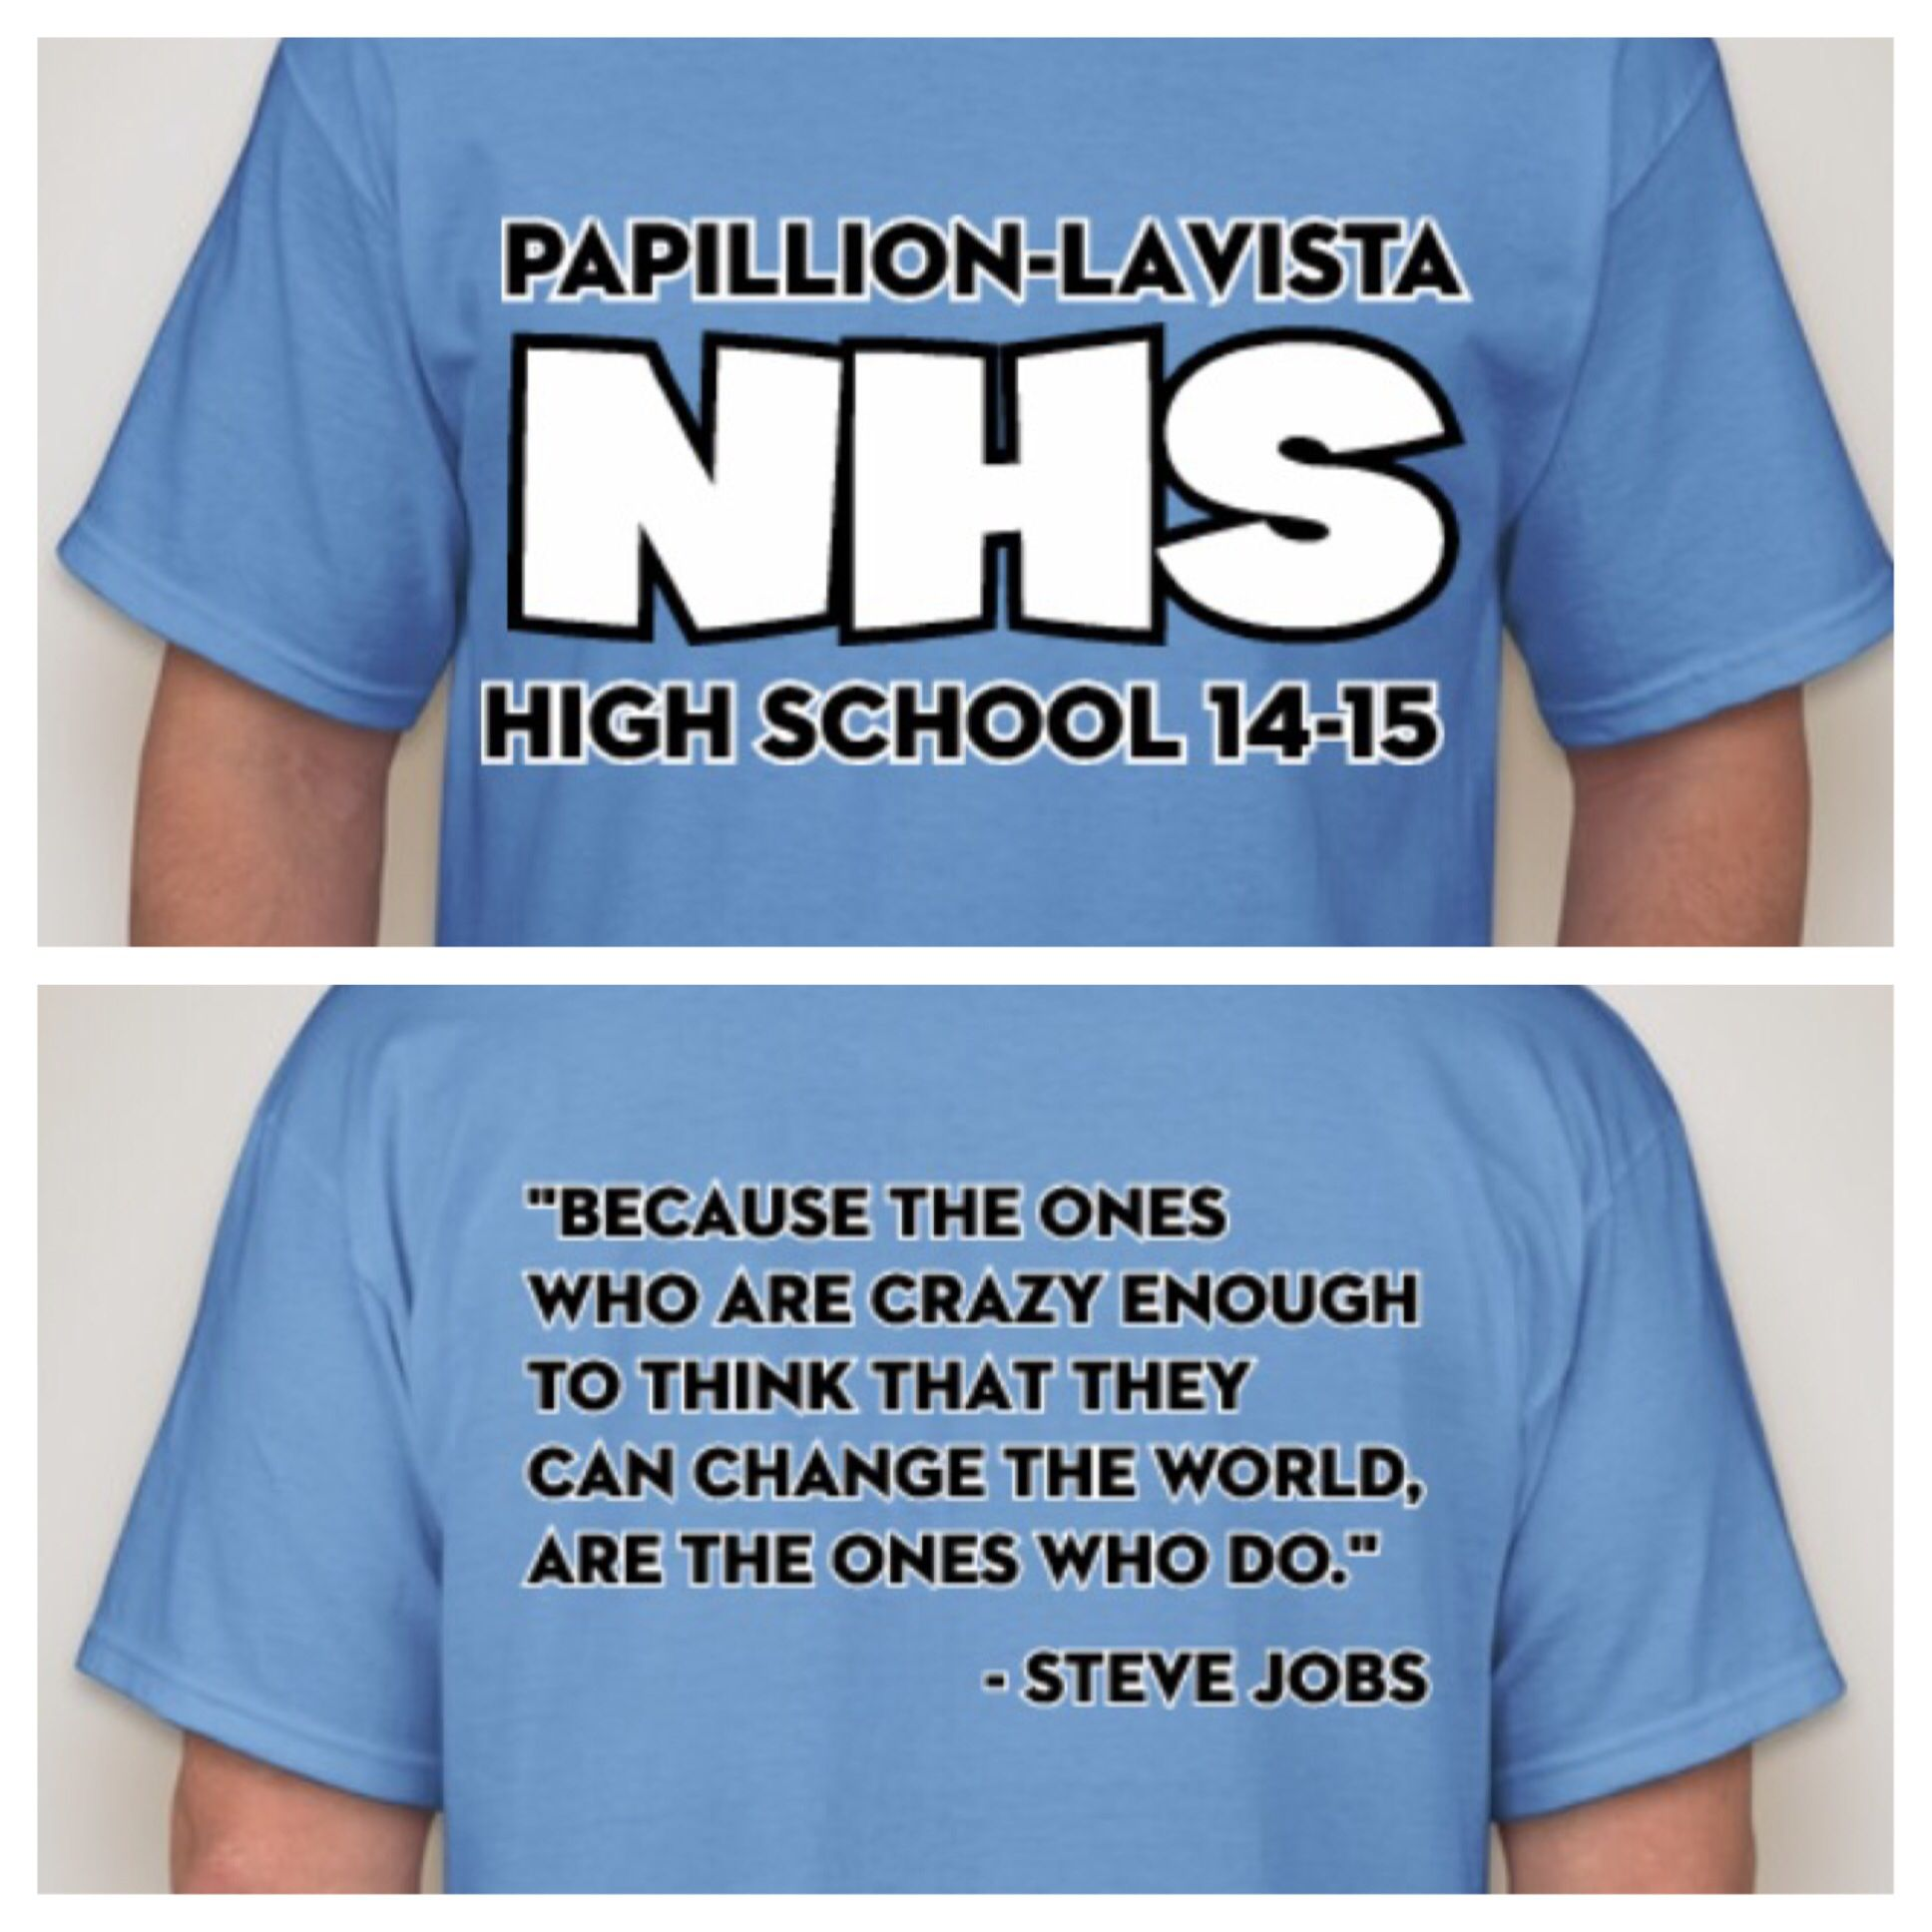 national honors society t shirt idea clothes national honors society t shirt idea